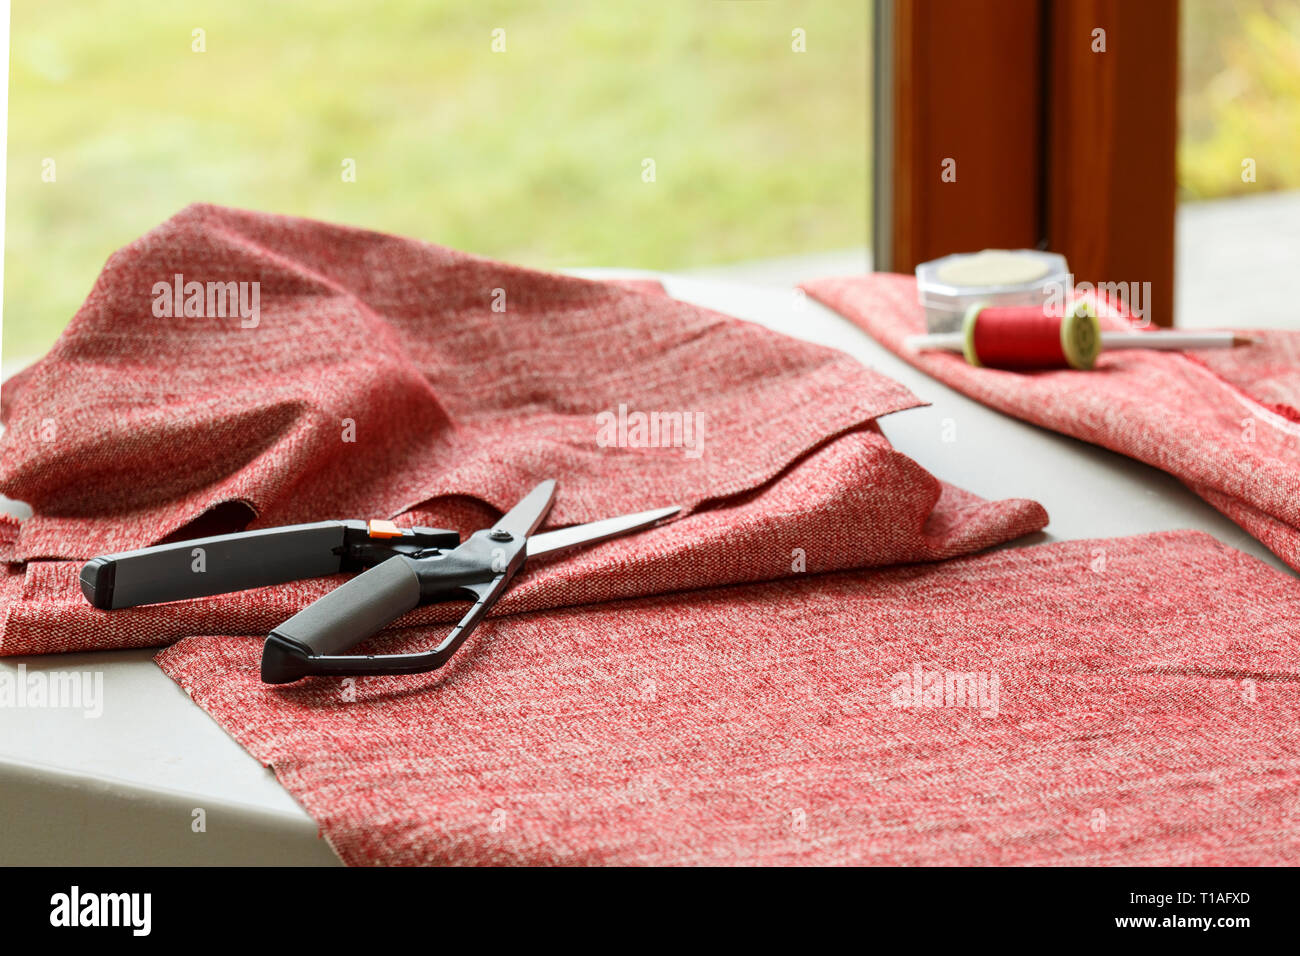 Home sewing crafts projects hobbies. Cloth fabric, scissors, and thread on table. - Stock Image